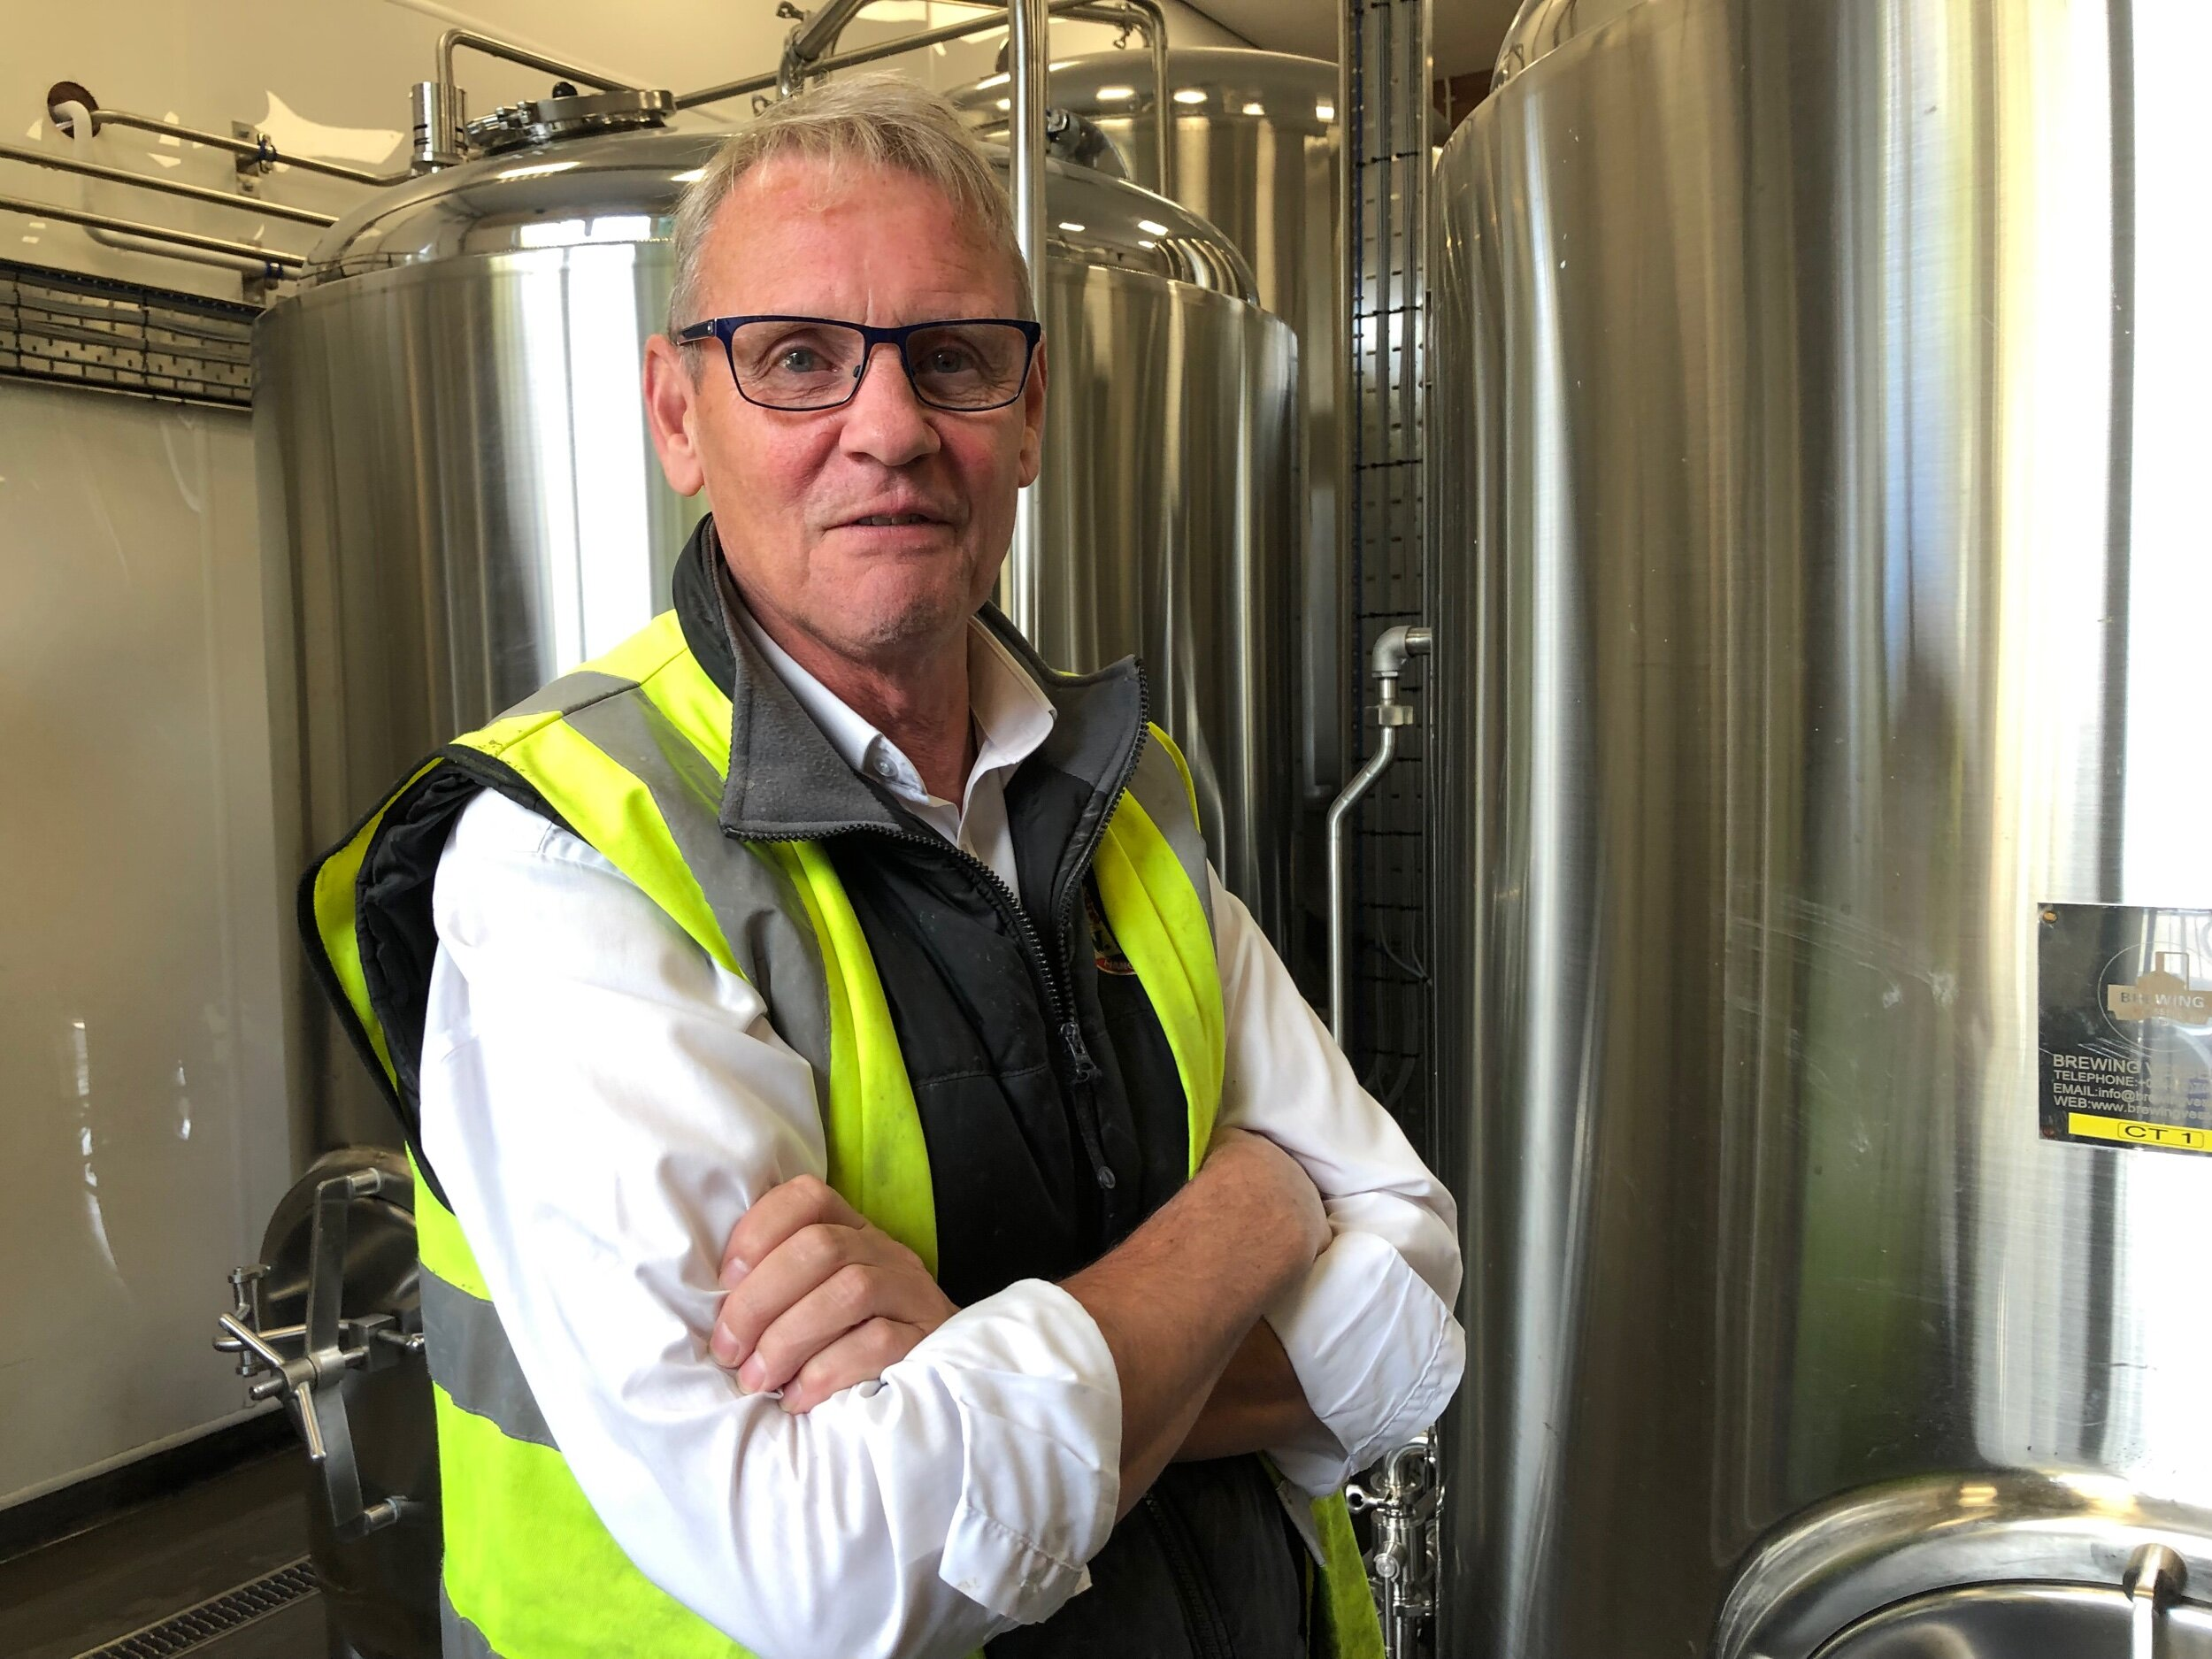 Paul Wood, currently in charge of the test brewery, who was the longtime head brewer. He started at Lee's in 1972.